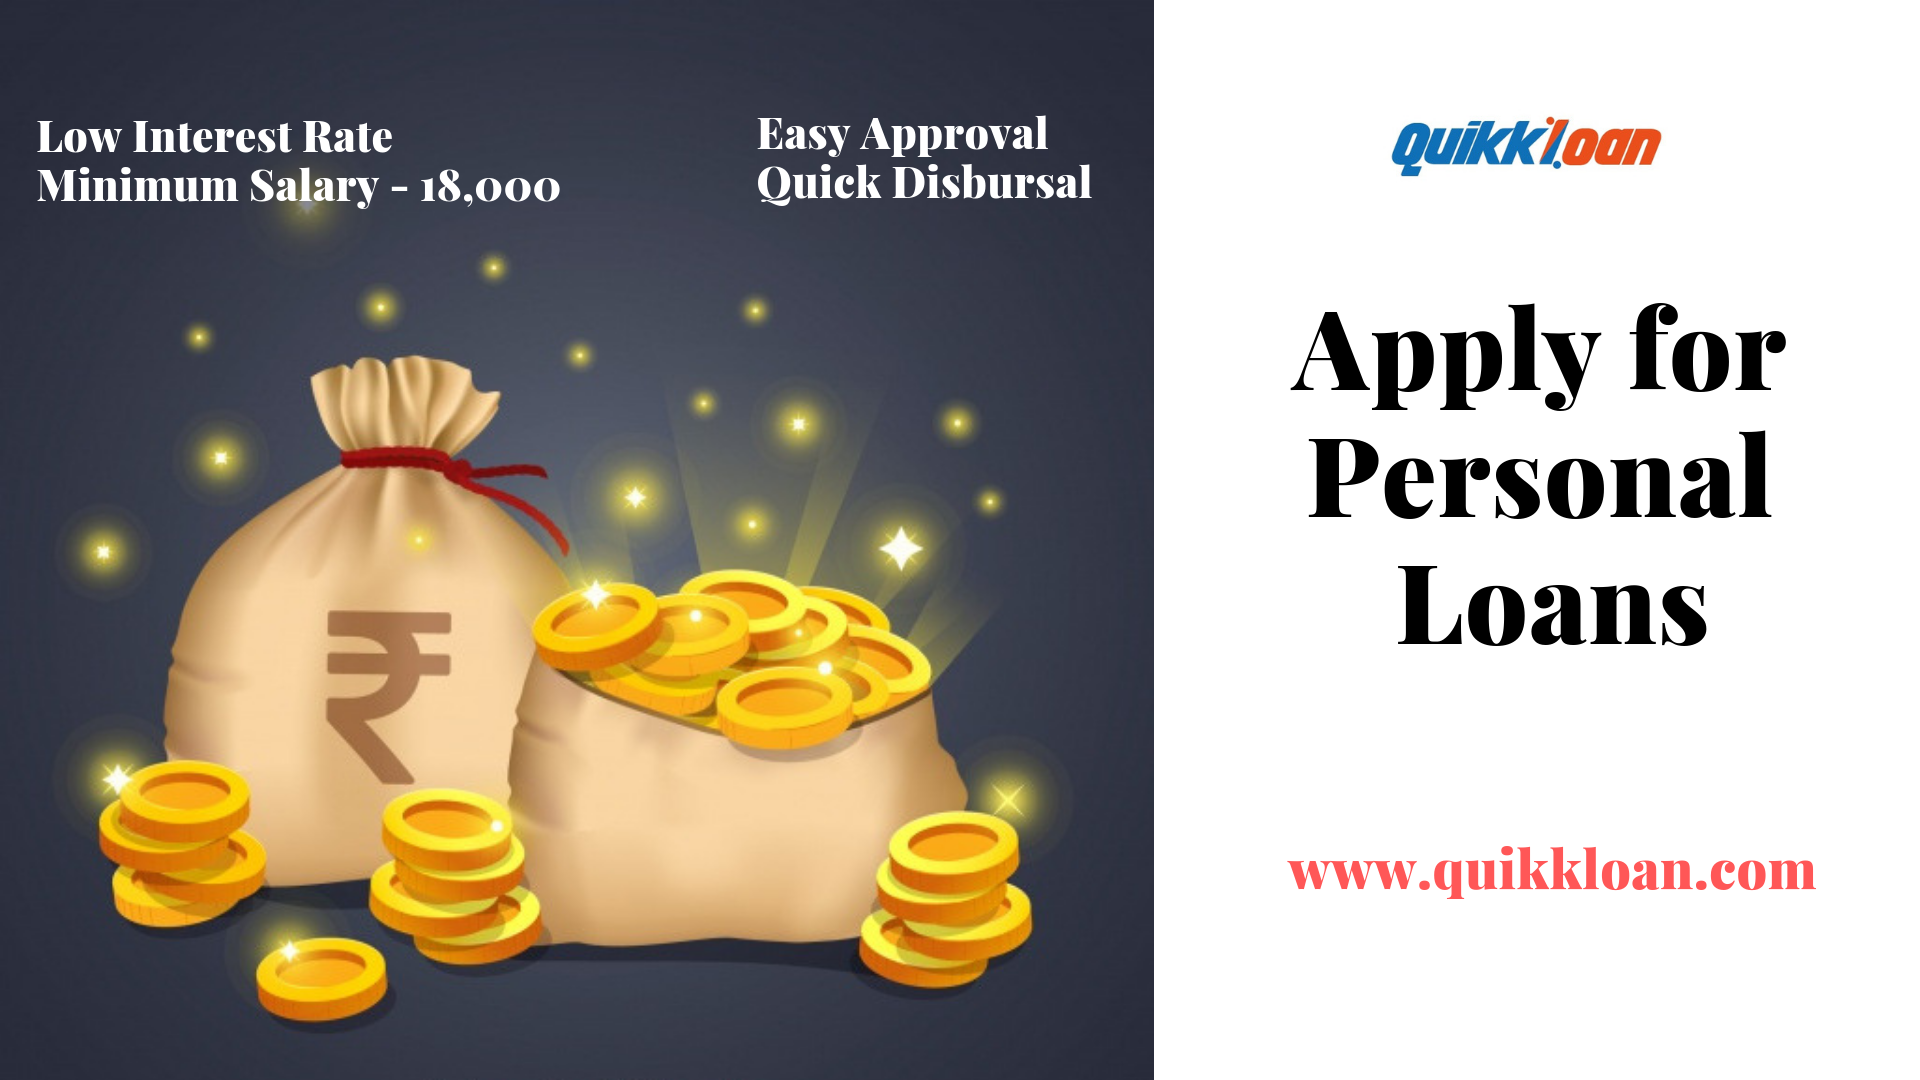 Instant personal loan approval and disbursal within 72